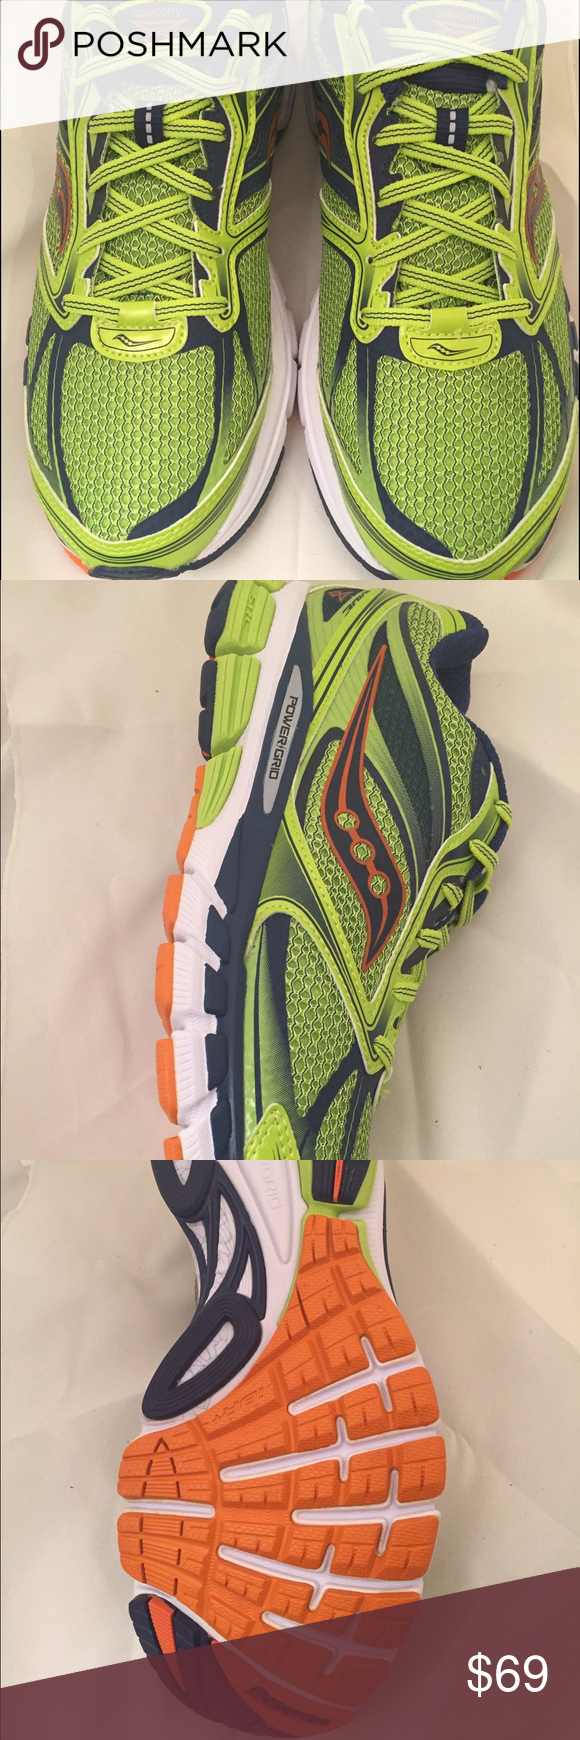 Men's Saucony Guide 8 Running Shoes size 10 Saucony Guide 8 Running Shoes for Men in size 10. Color: Lime Green, White and Blue. New never worn Saucony Shoes Athletic Shoes